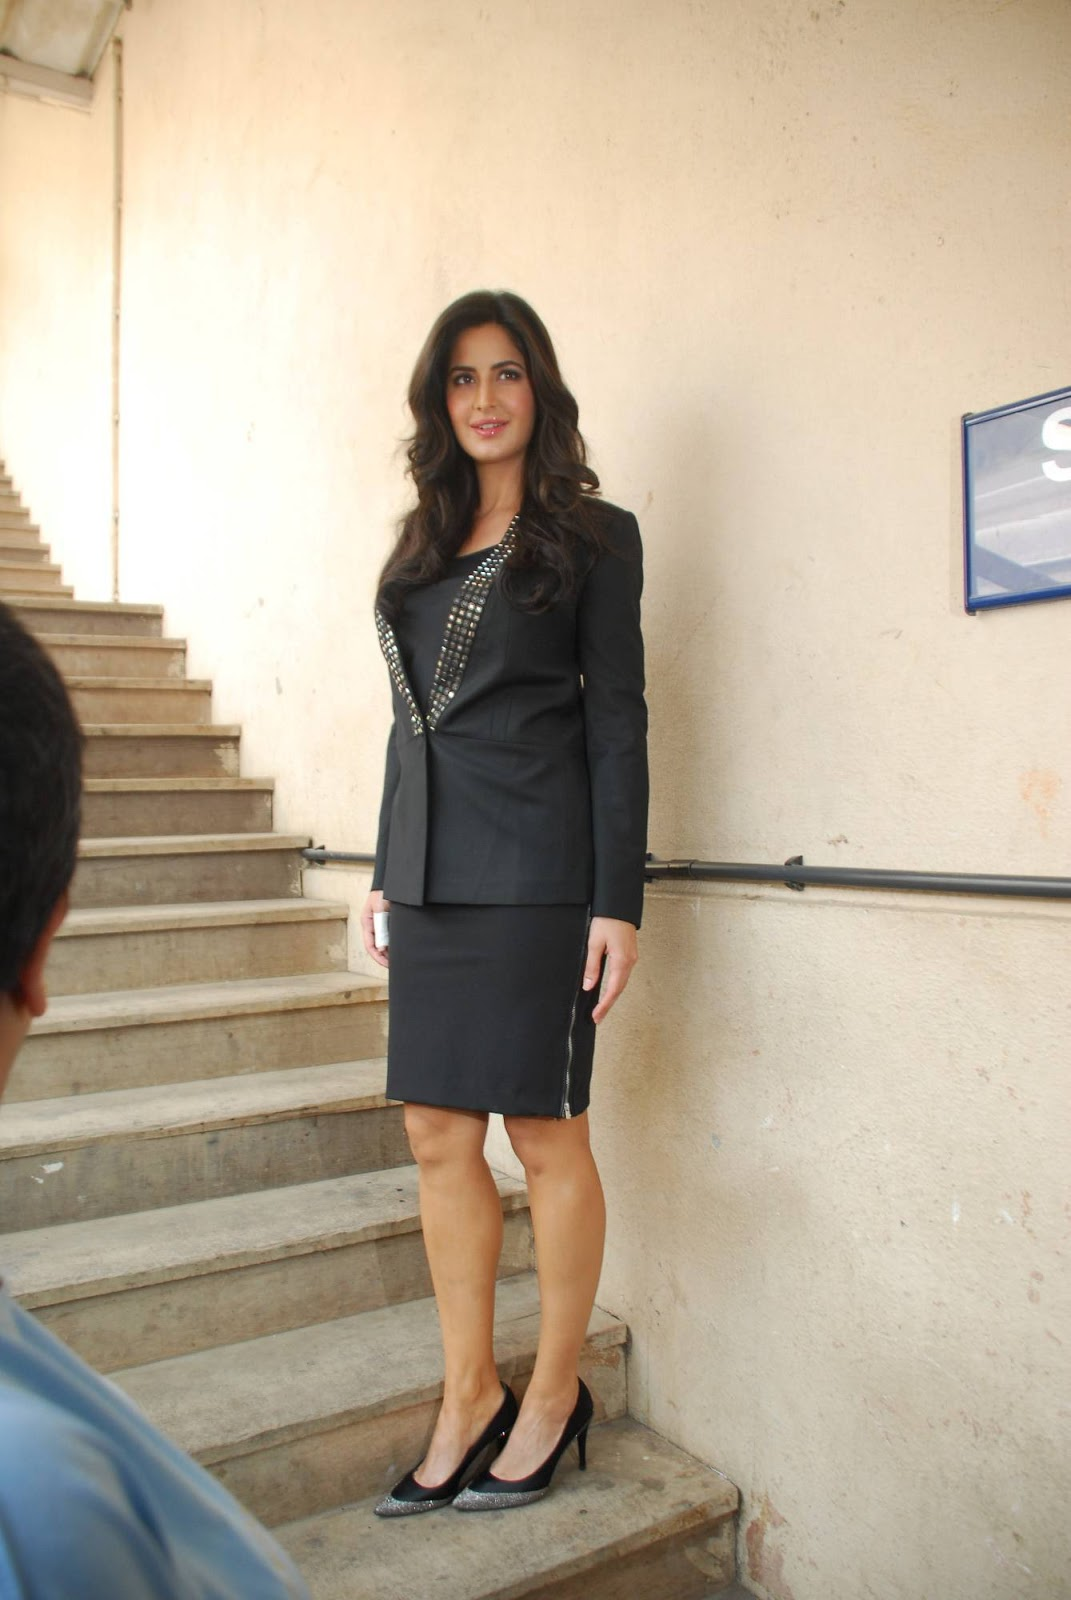 Katrina Kaif Latest Stills In Hot Black Dress